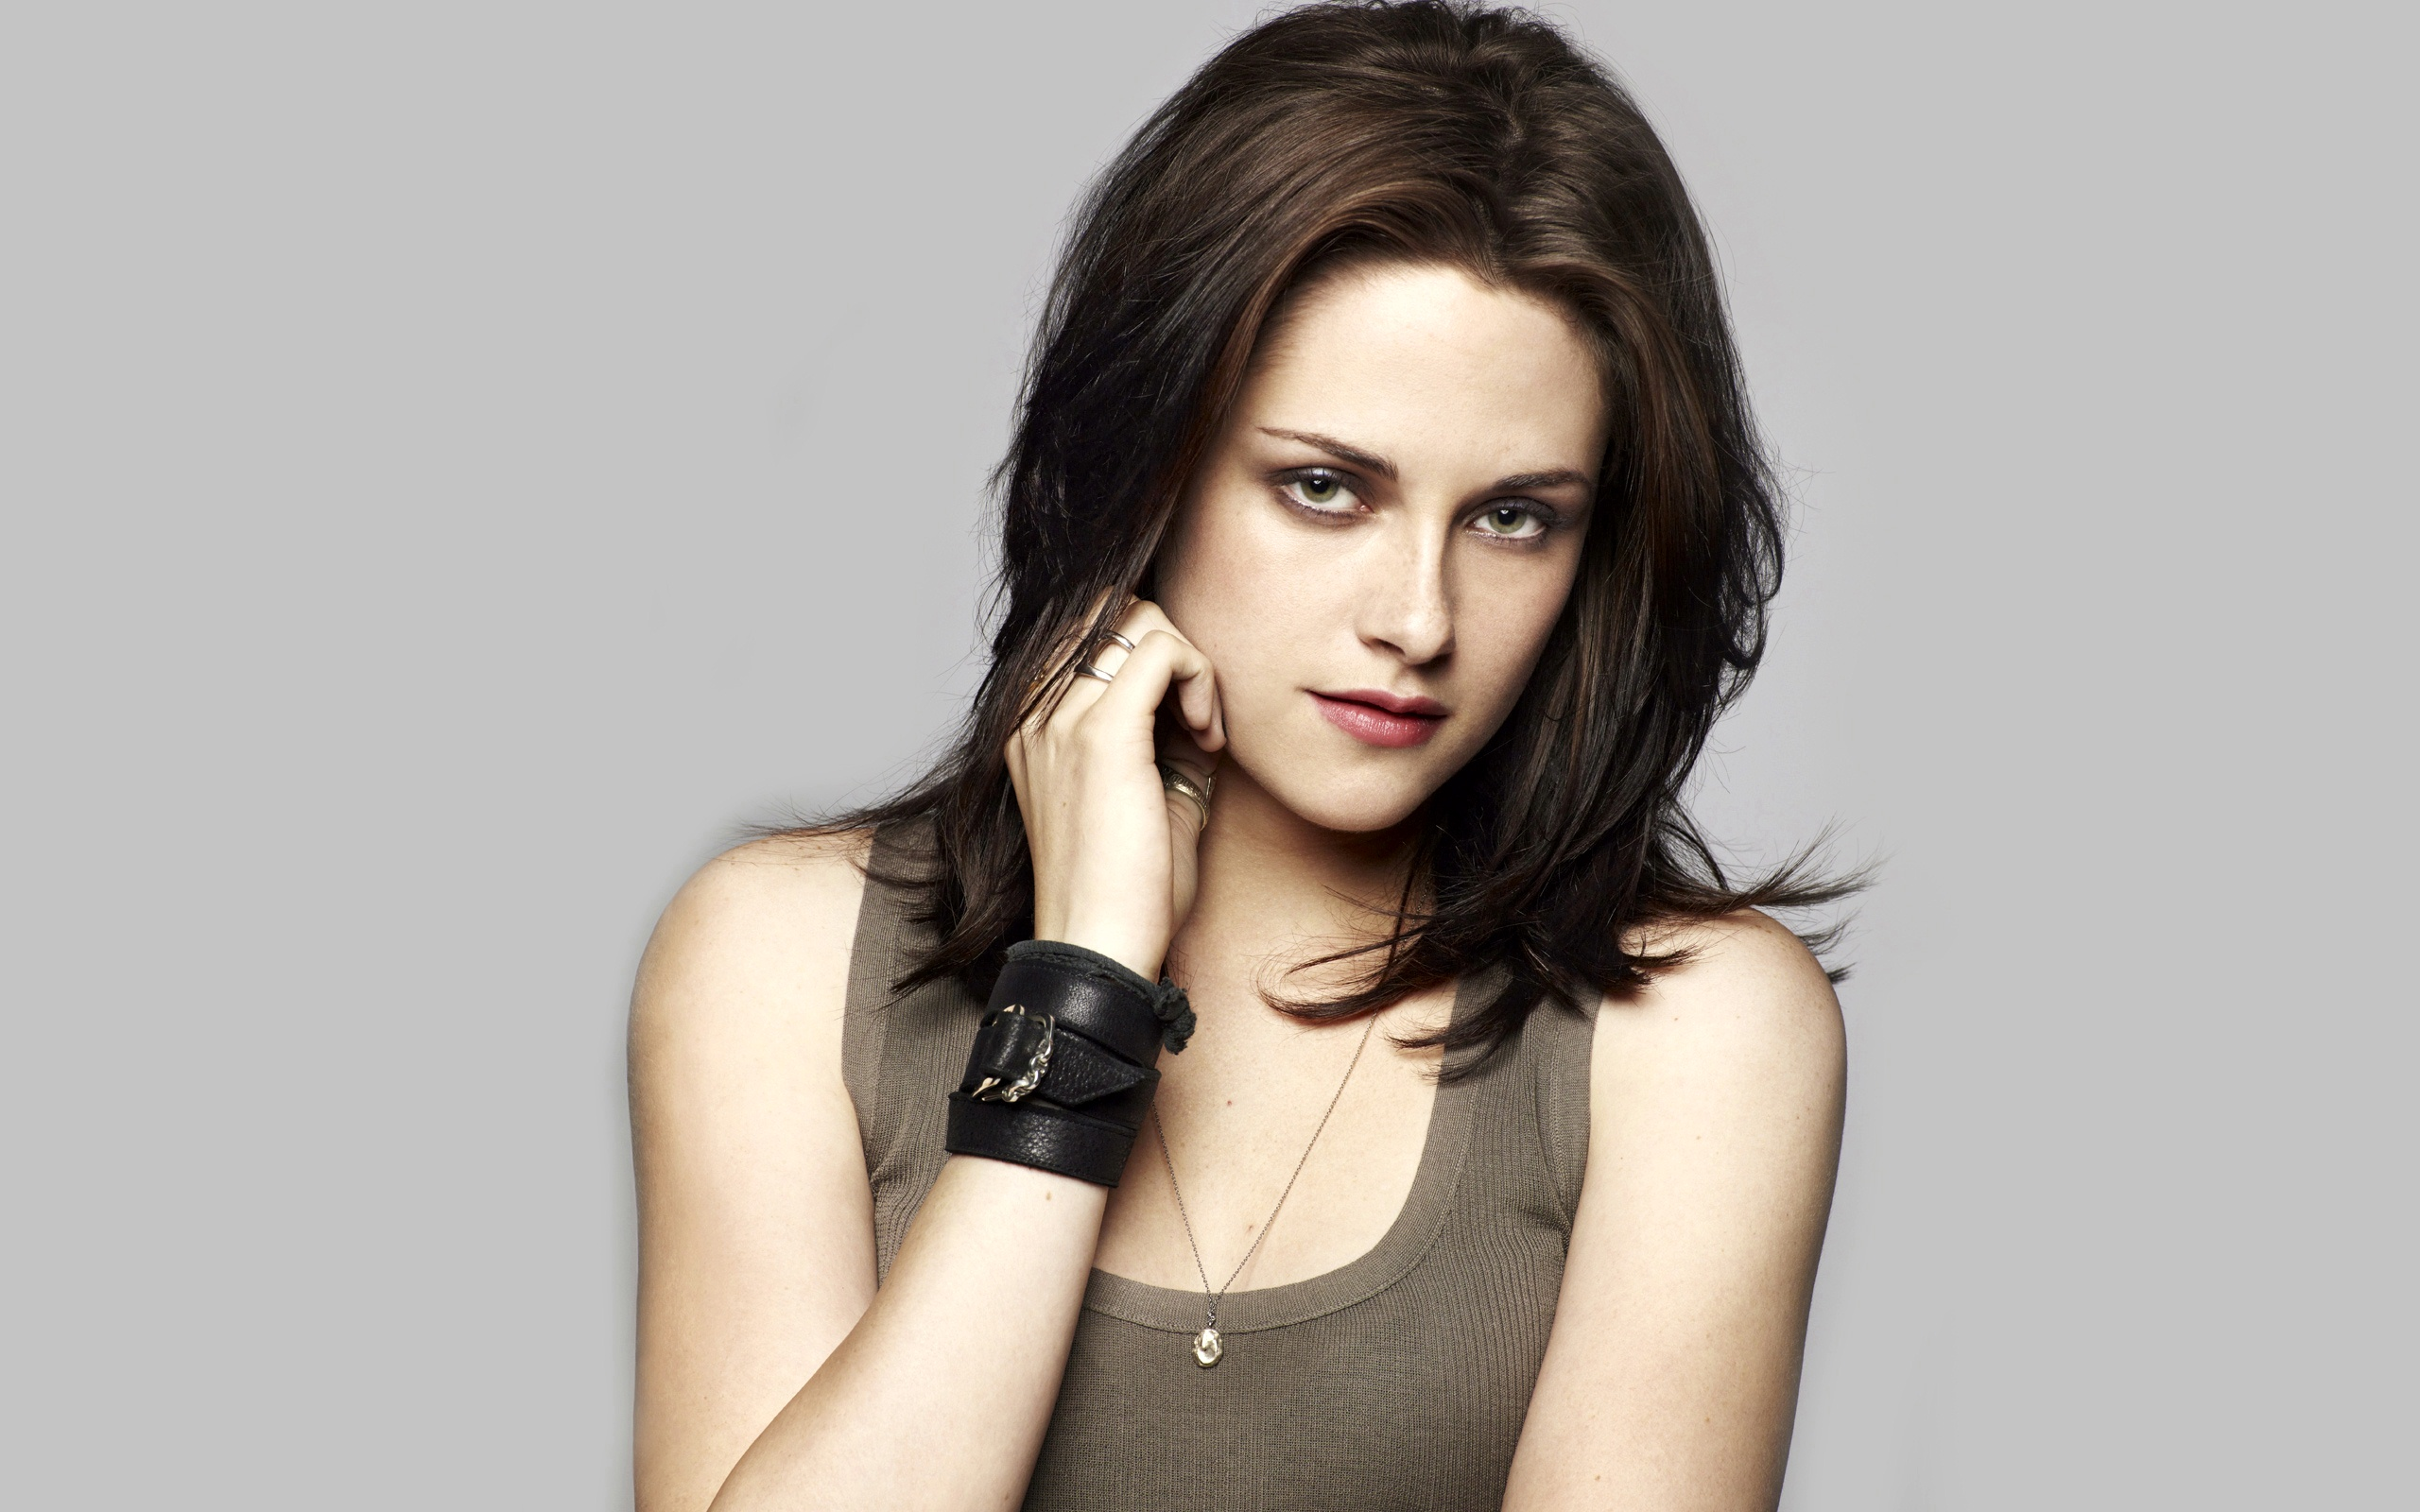 Kristen Stewart Wallpapers - Page 3 - HD Wallpapers